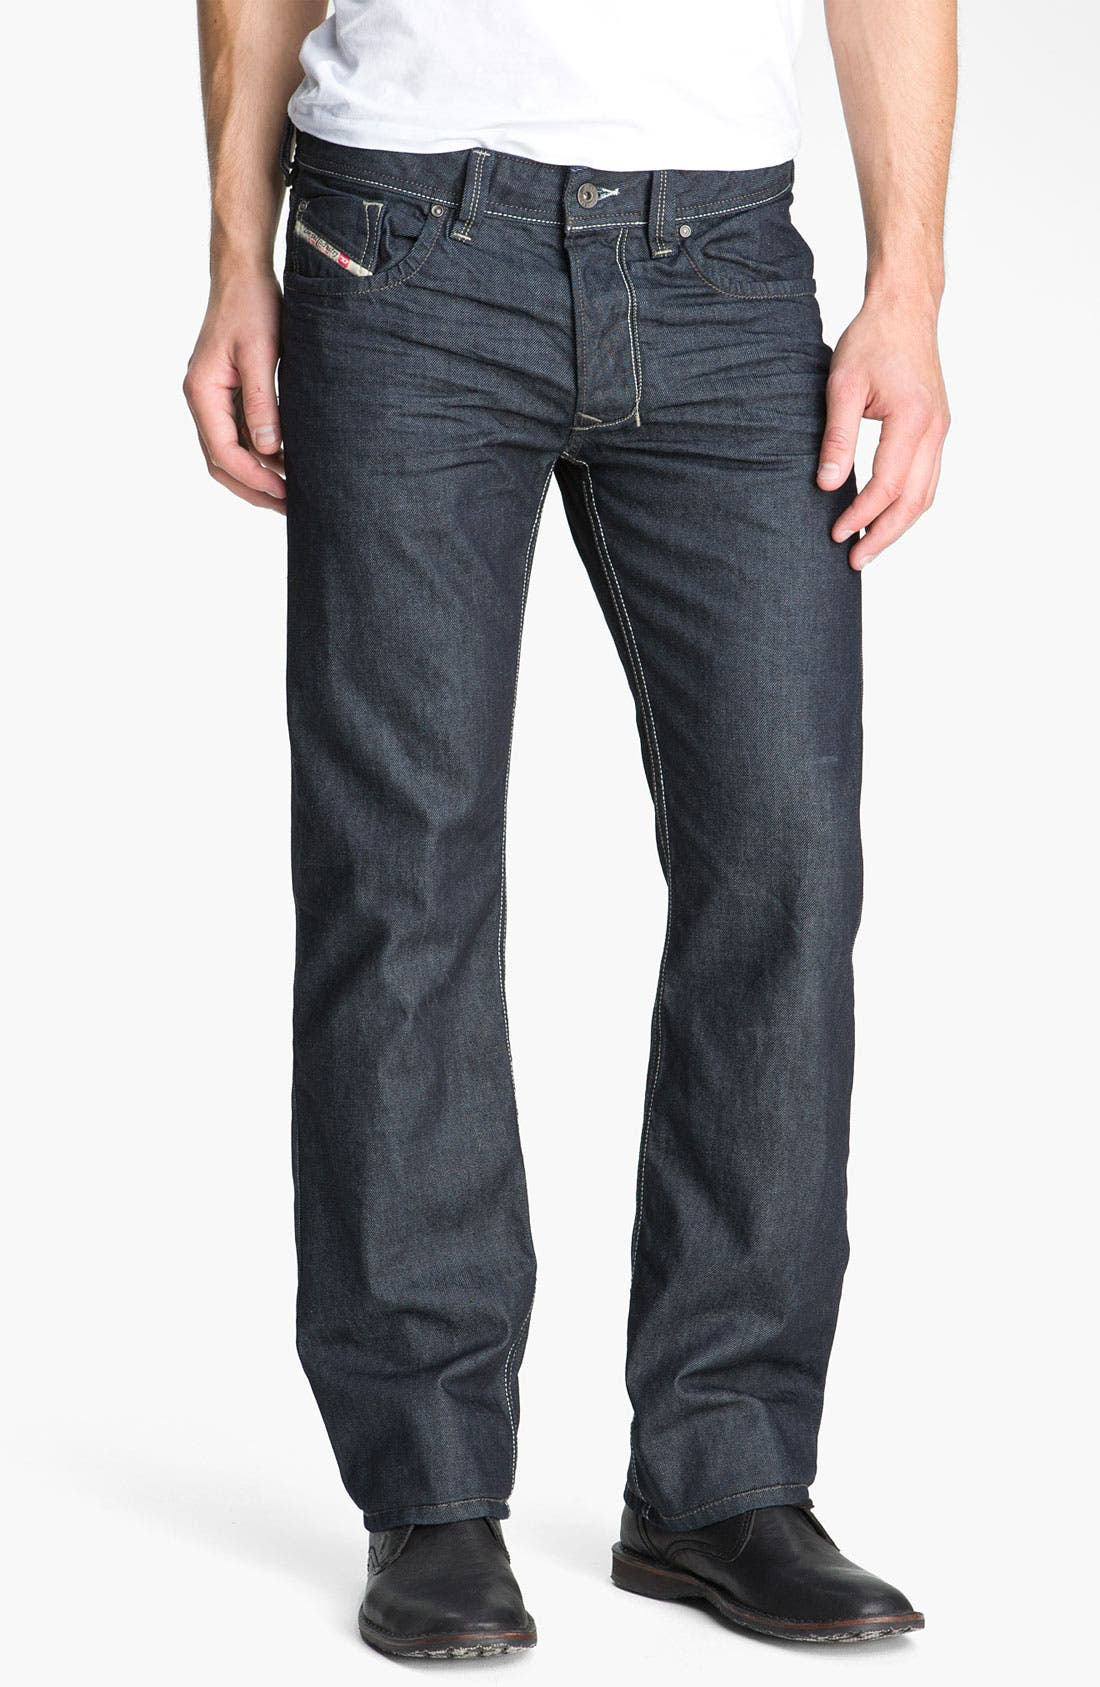 'Larkee' Straight Leg Jeans,                             Alternate thumbnail 3, color,                             400